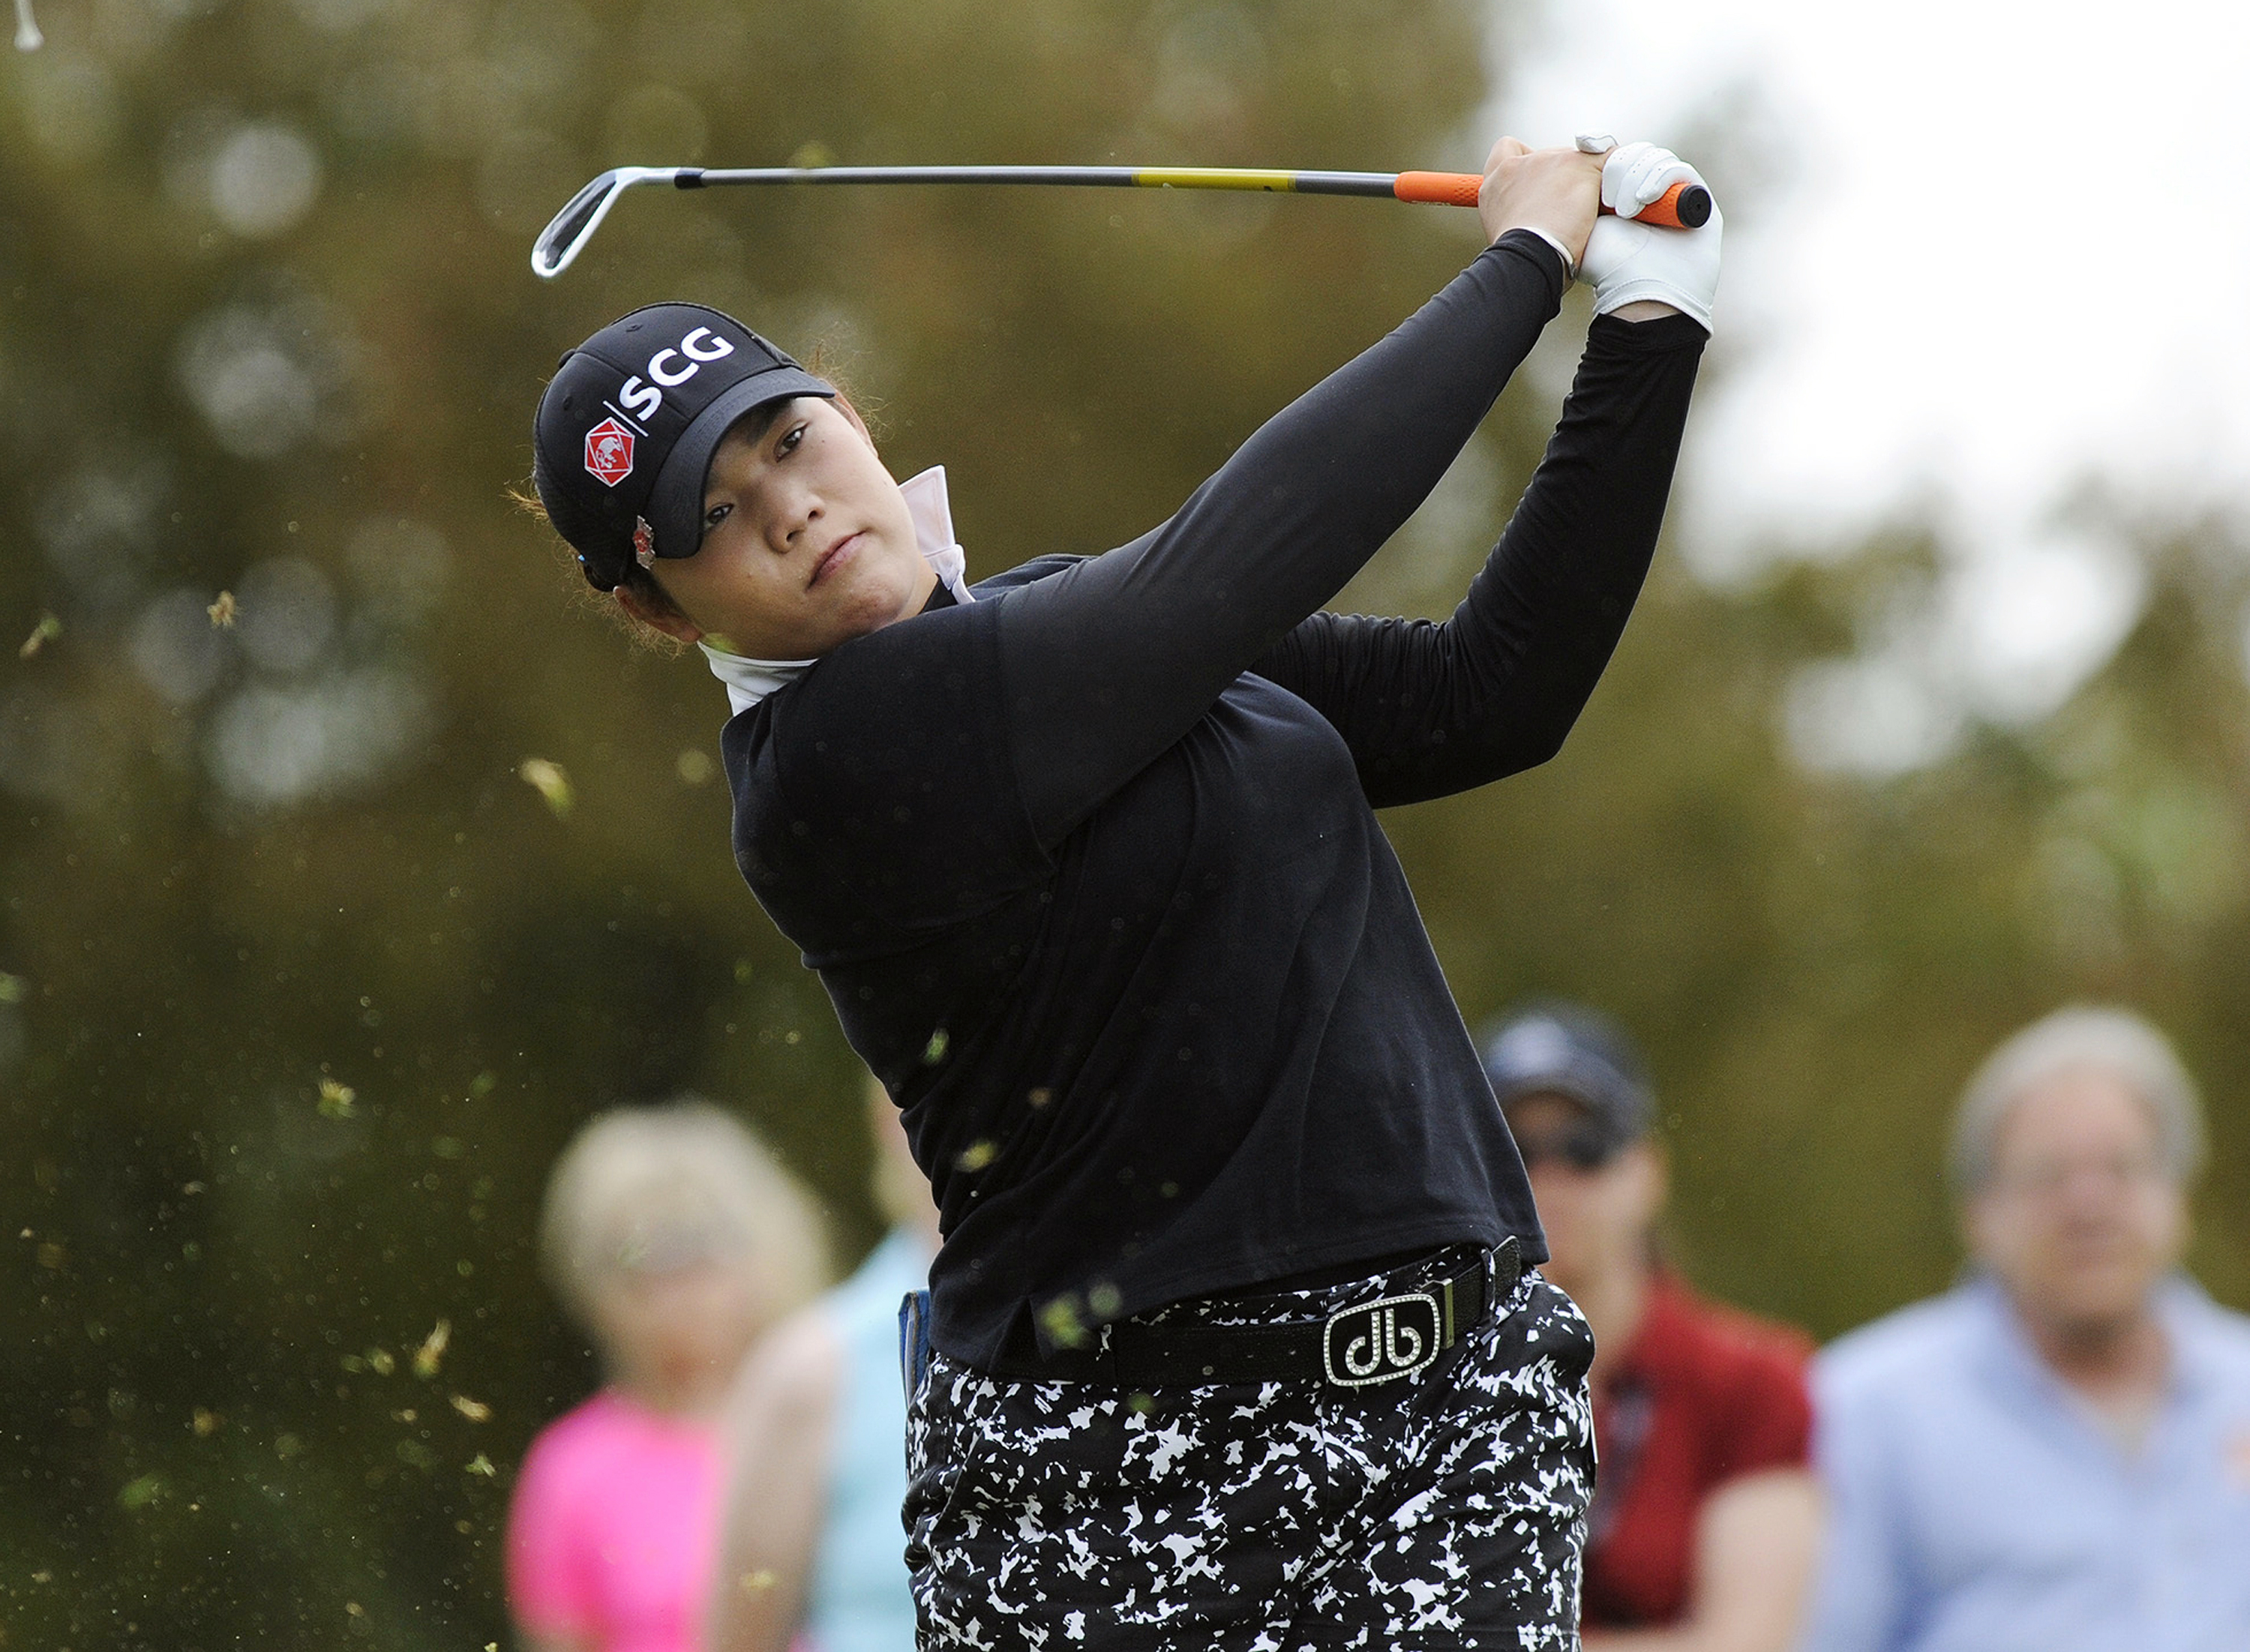 FILE - In this May 29, 2016, file photo, Ariya Jutanugarn, of Thailand, hits from the second tee during the final round of the LPGA Volvik Championship golf tournament at the Travis Pointe Country Club, in Ann Arbor, Mich. A day ahead of the start of the